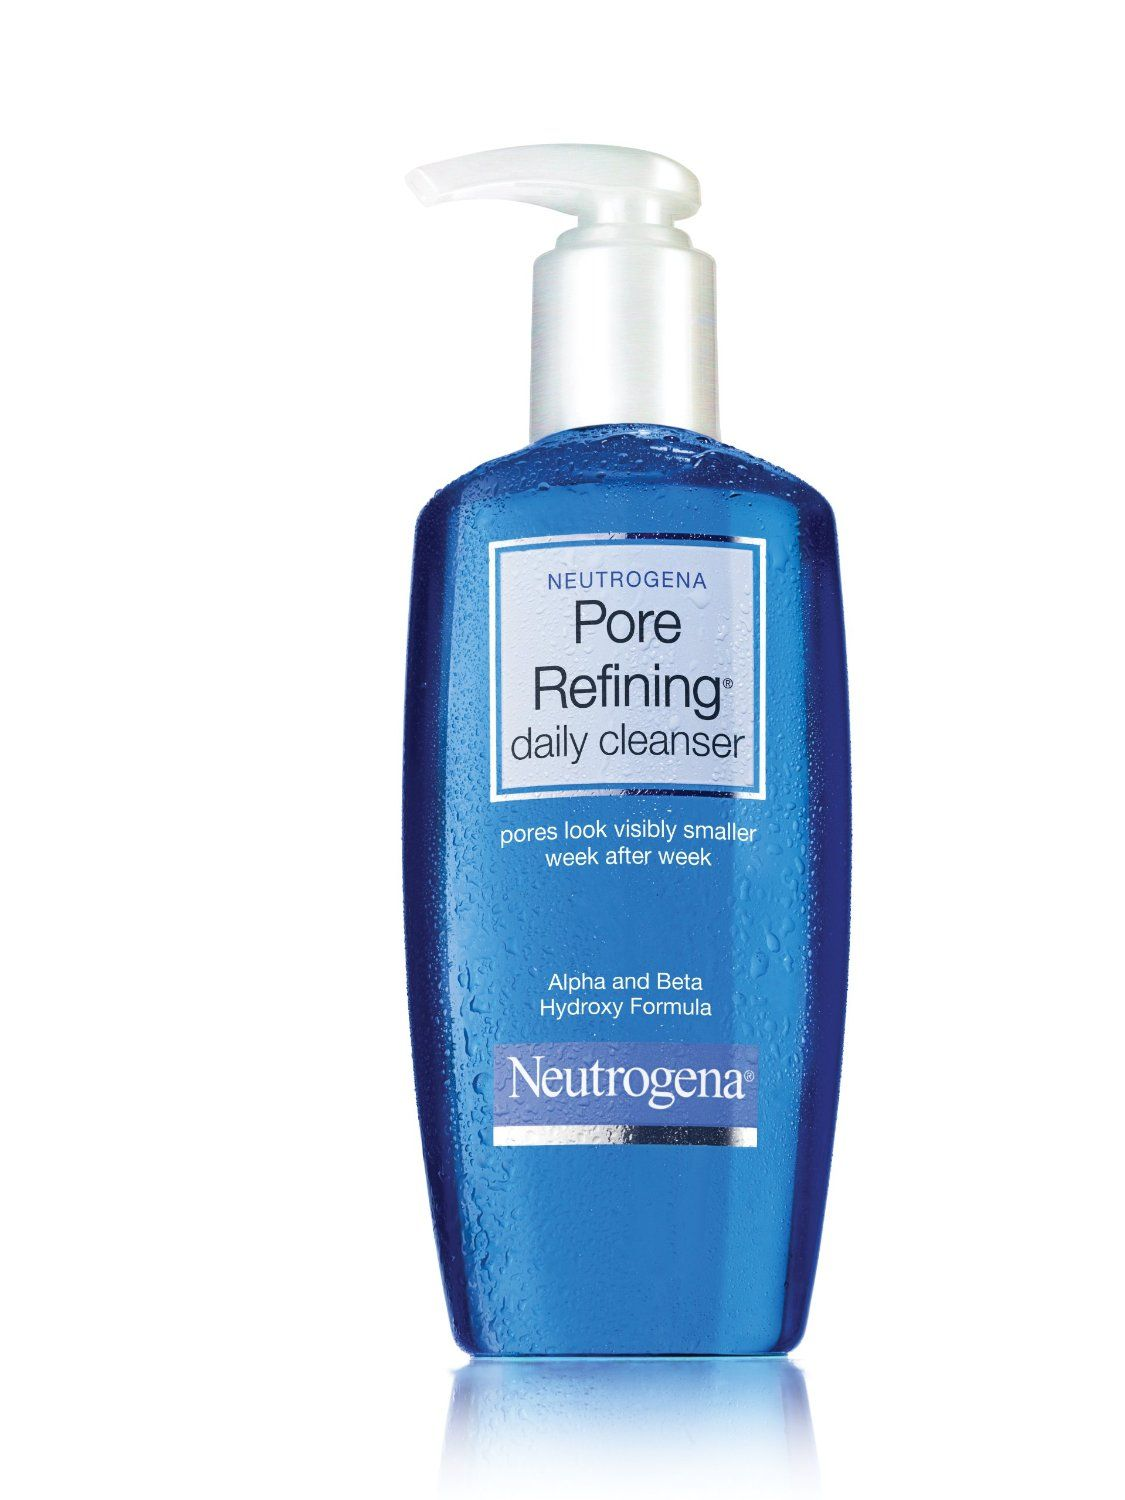 Neutrogena Pore Refining Daily Cleanser. See my review: http://productfanatic.com/lucky-7-drug-store-steals/